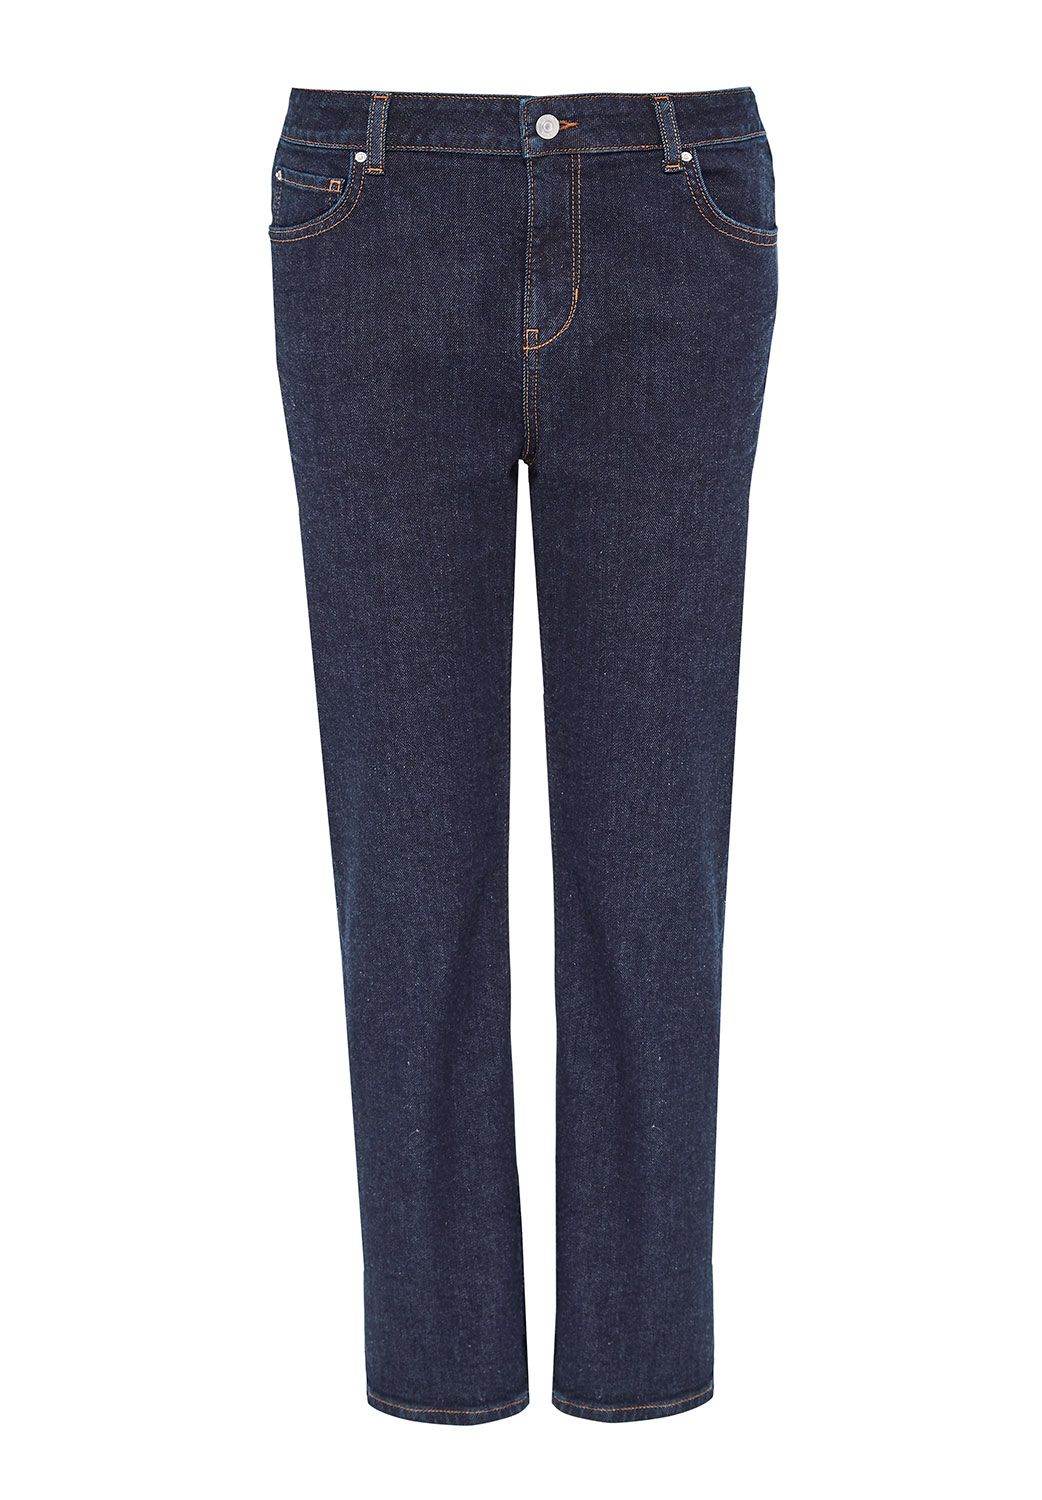 Hallhuber Boyfriend Jeans Made Of Candiani Denim, Blue